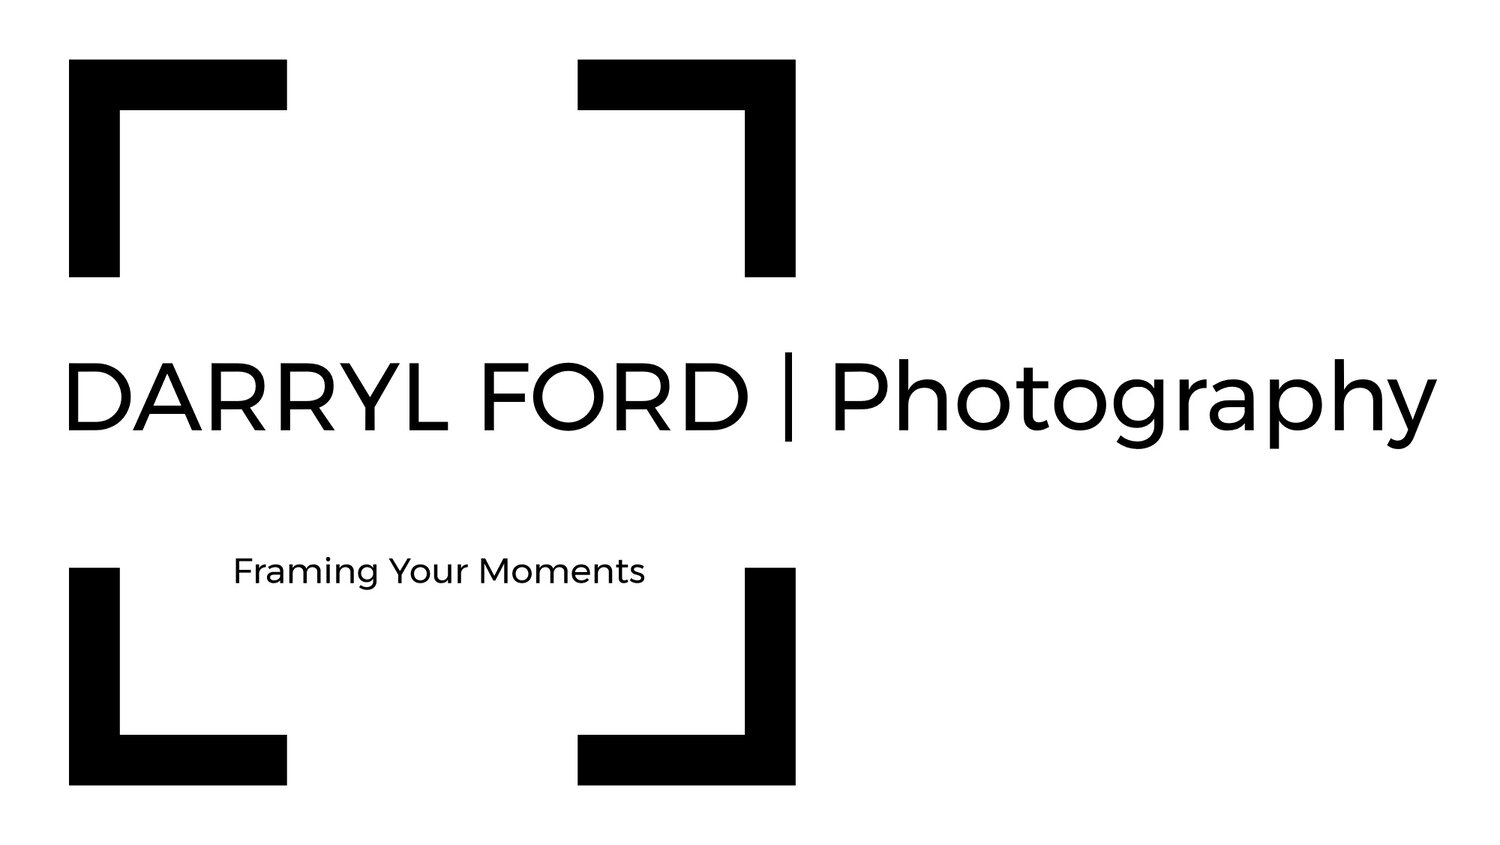 DARRYL  FORD | PHOTOGRAPHY